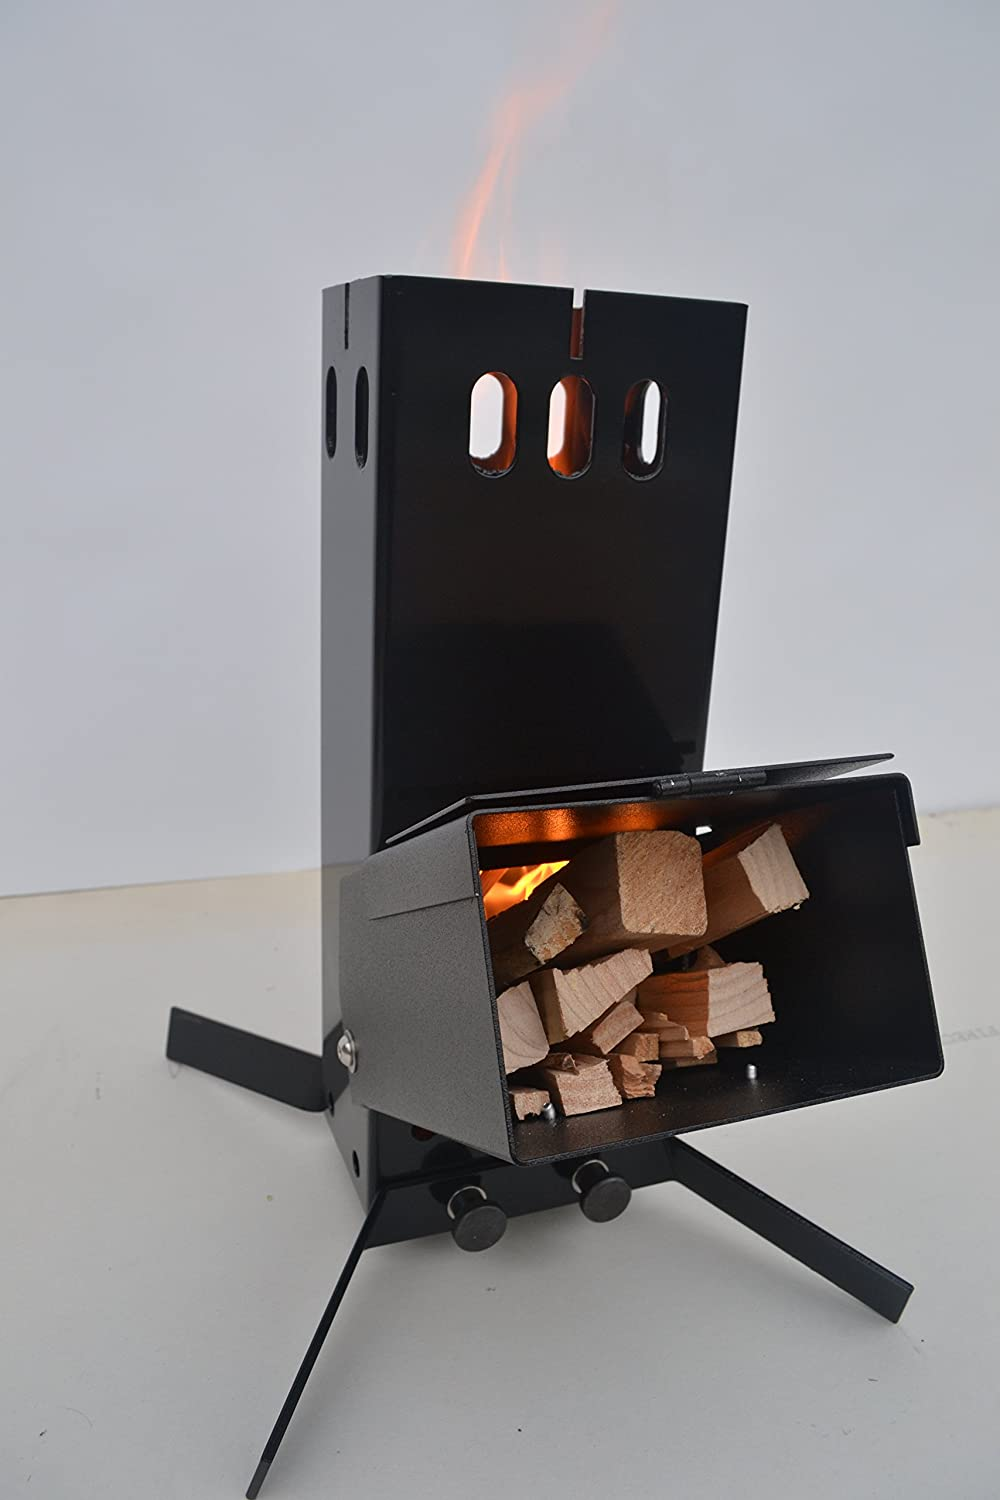 Hottop Camping Survival Rocket Stove Sports Outdoors Another Diagram Build Pinterest